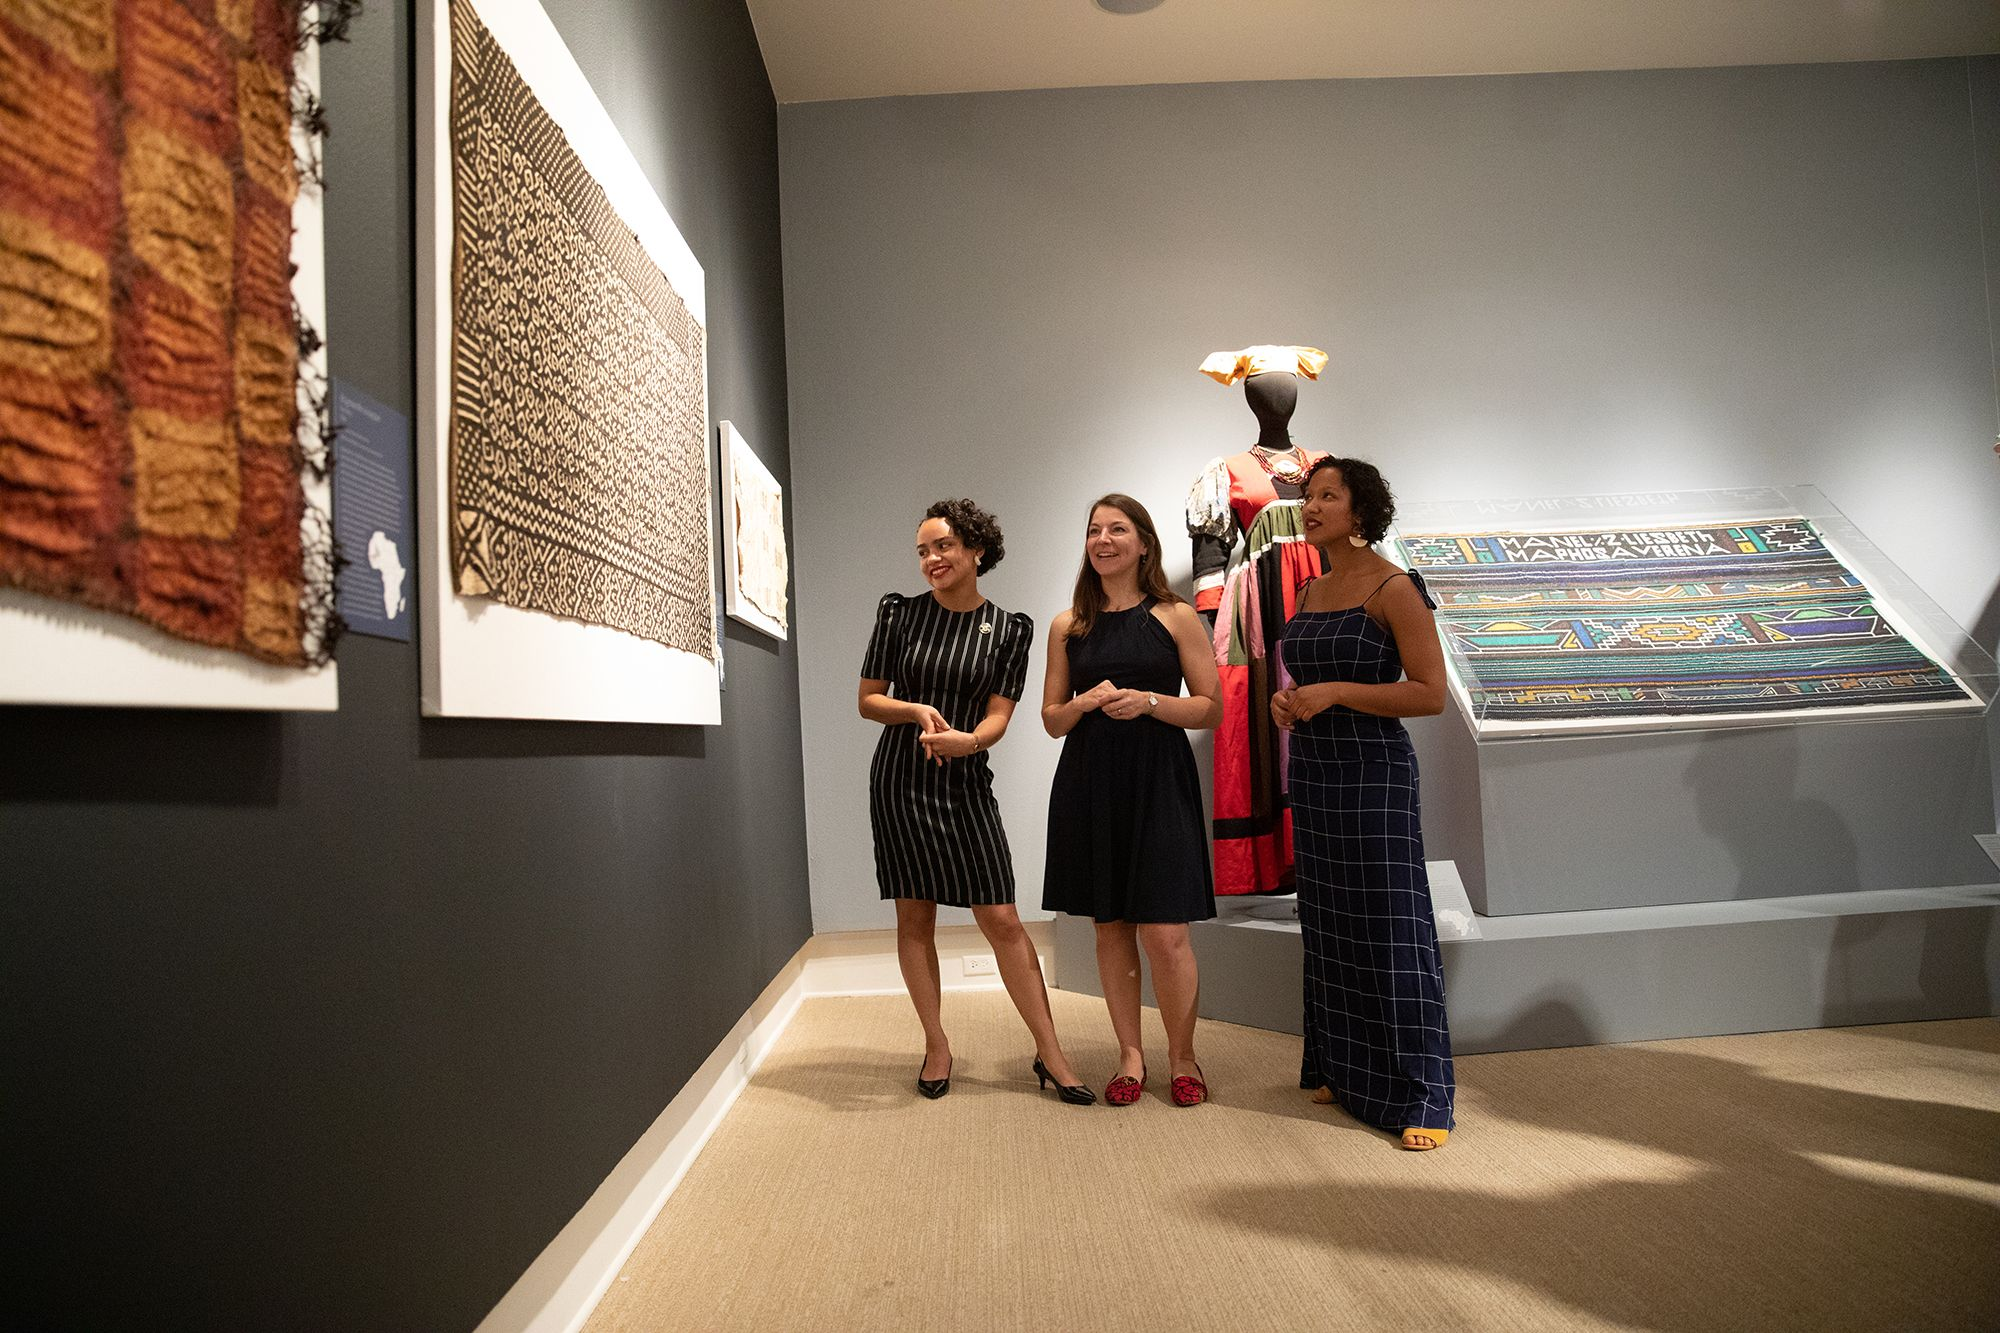 A professor and two students explore the exhibition they curated at the Cornell Fine Arts Musuem.